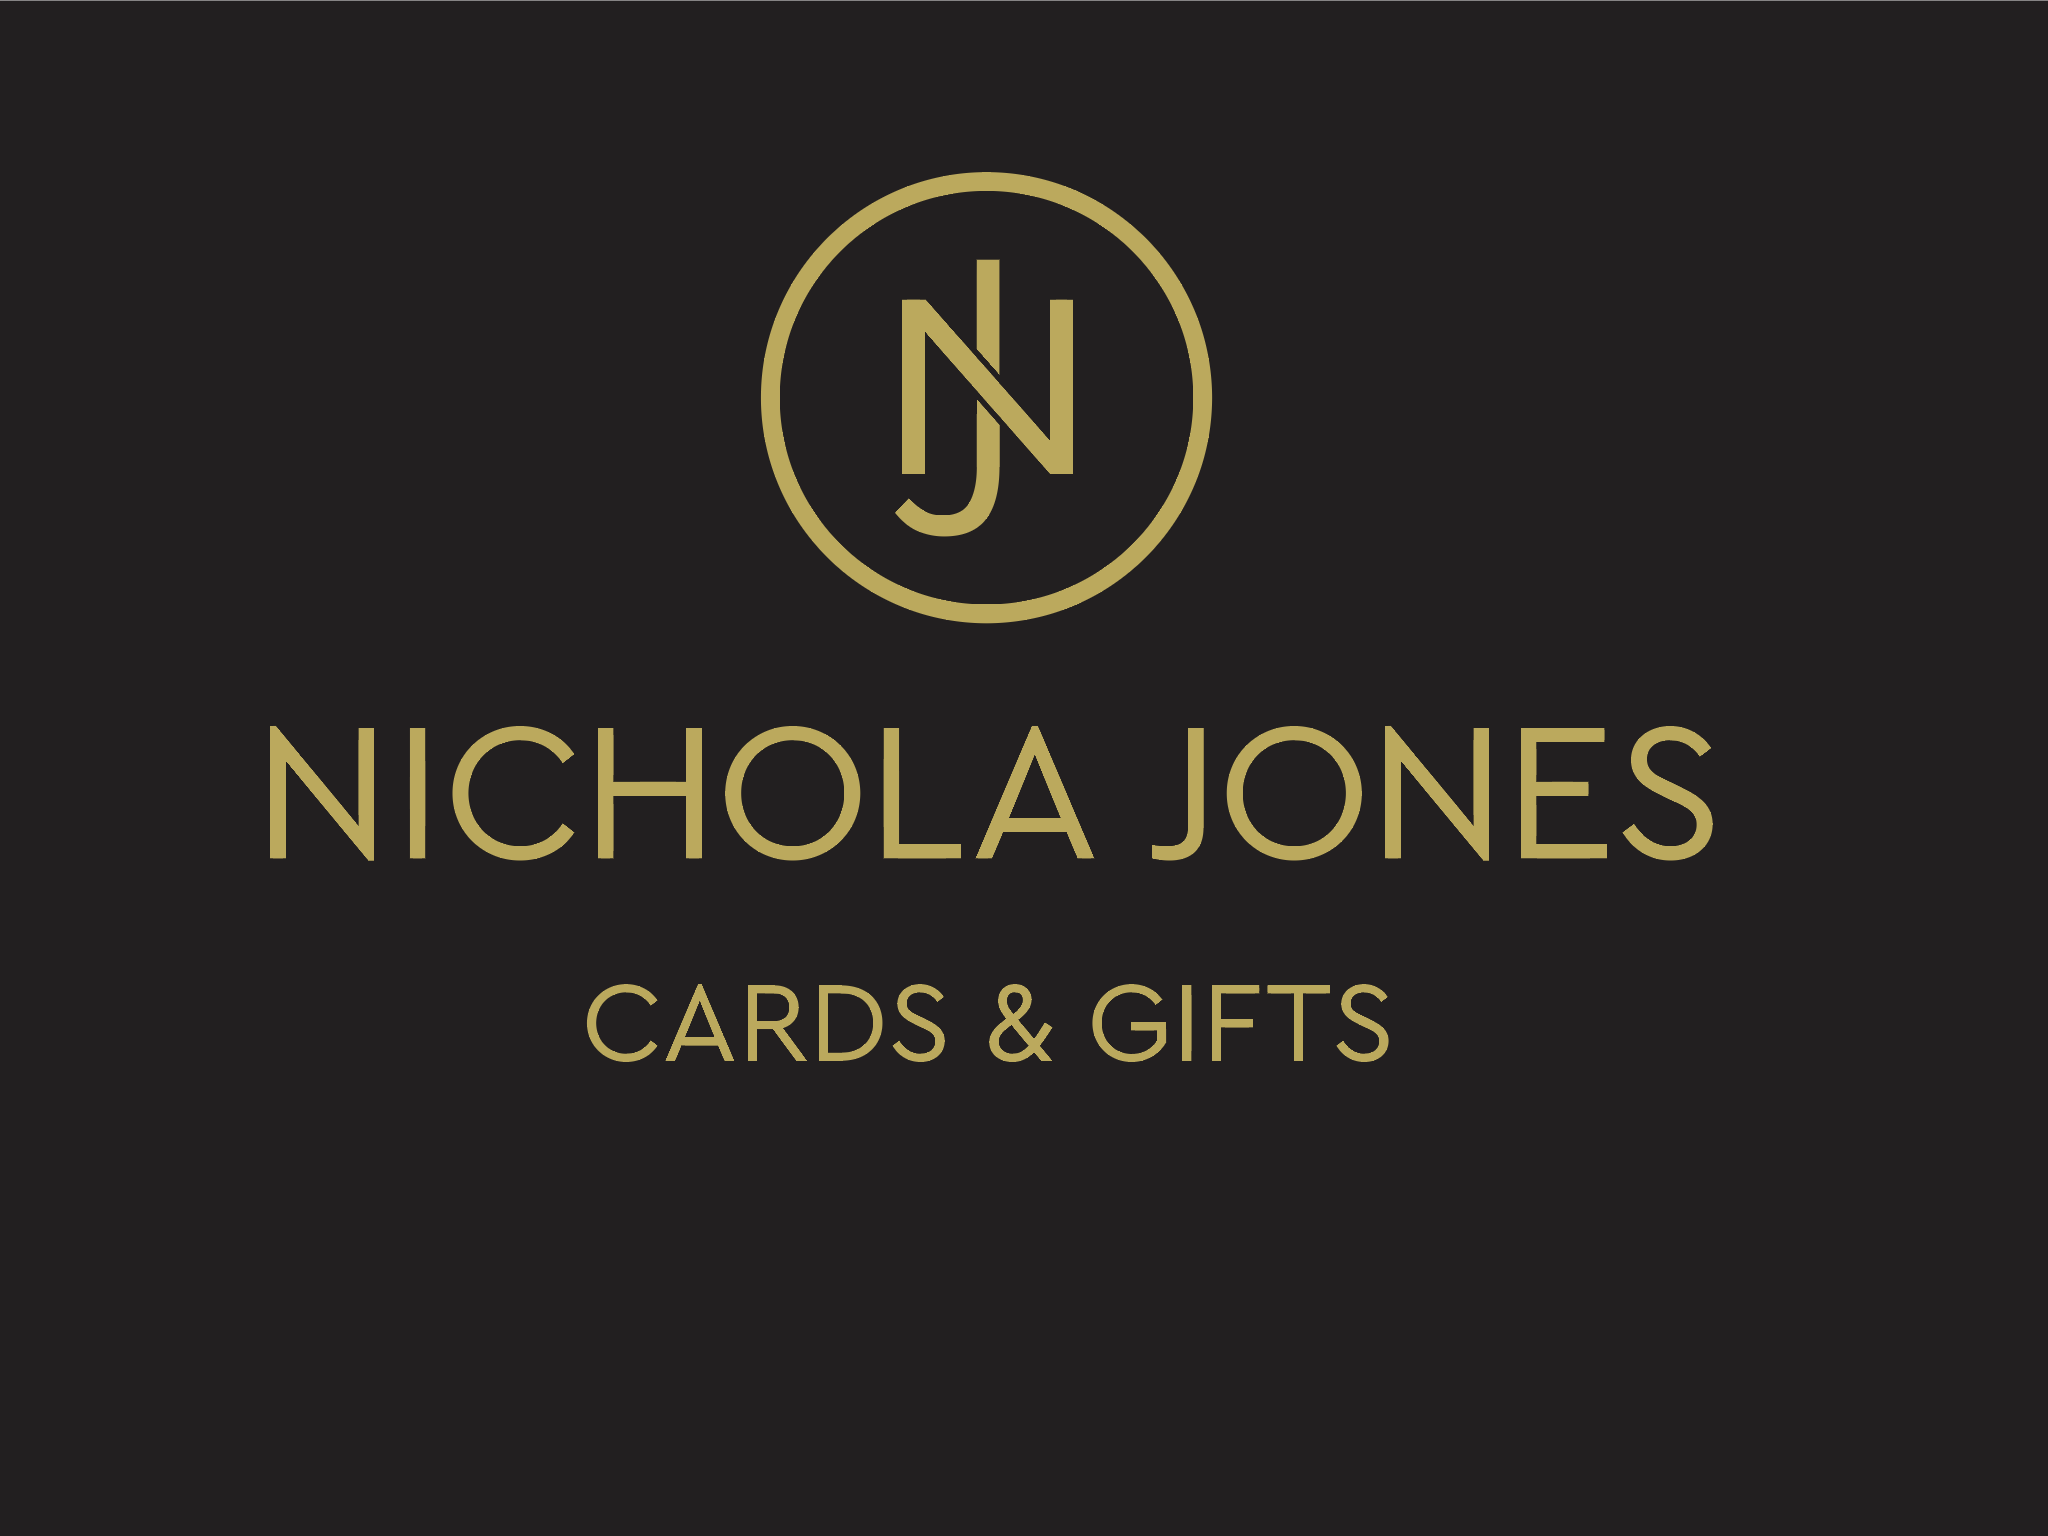 Nichola Jones Cards and Gifts Image